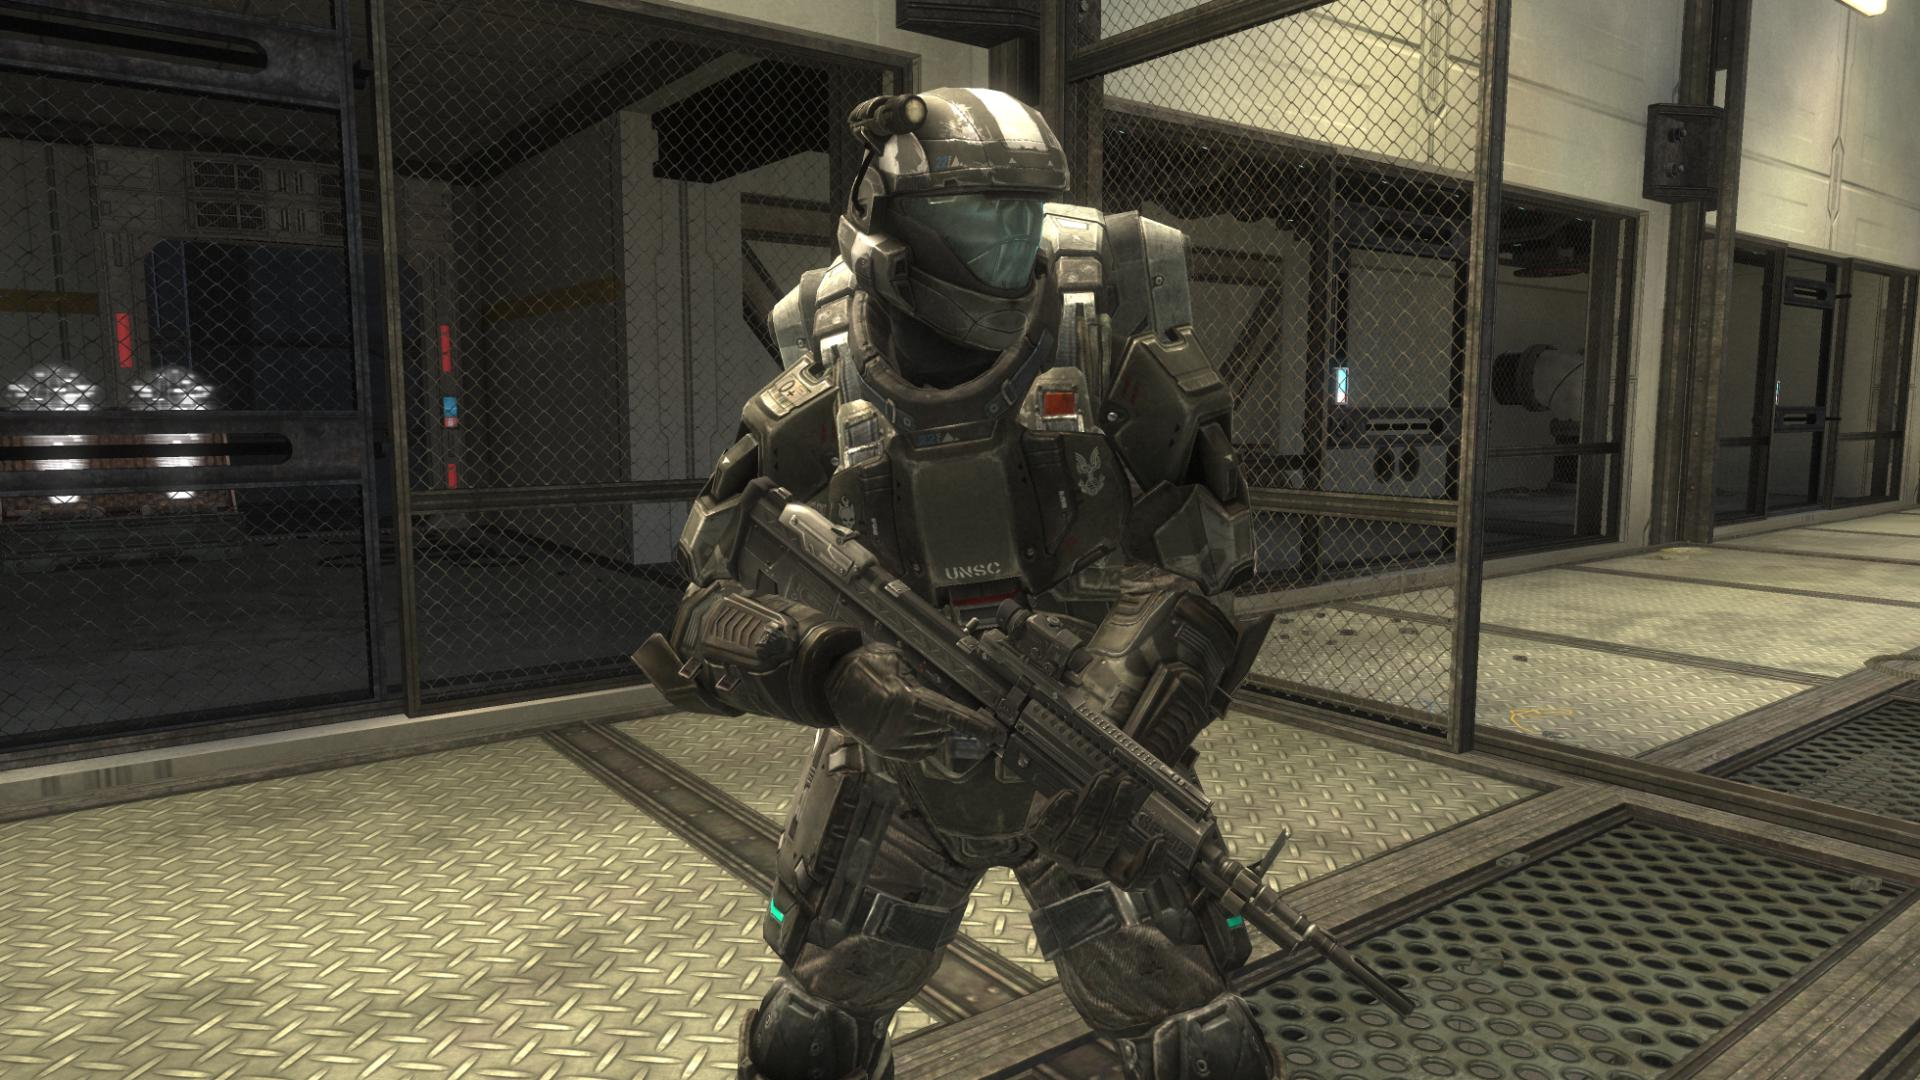 Halo Reach Odst Mk I Halo Costume And Prop Maker Community 405th